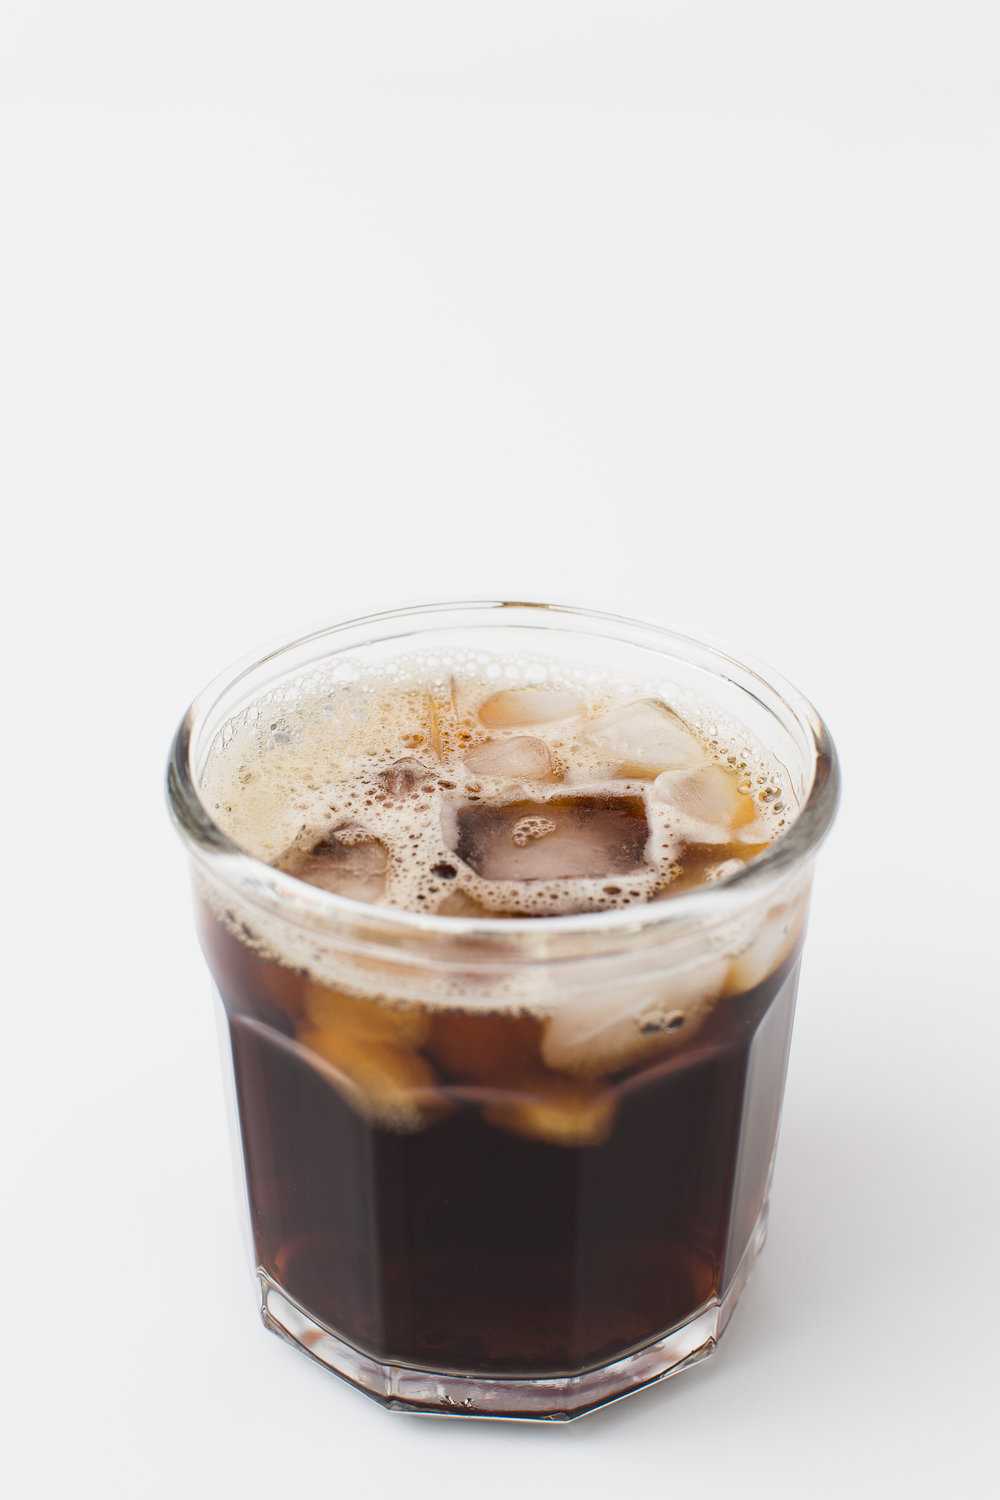 Eote iced coffee with milk clear glass social media marketing photography